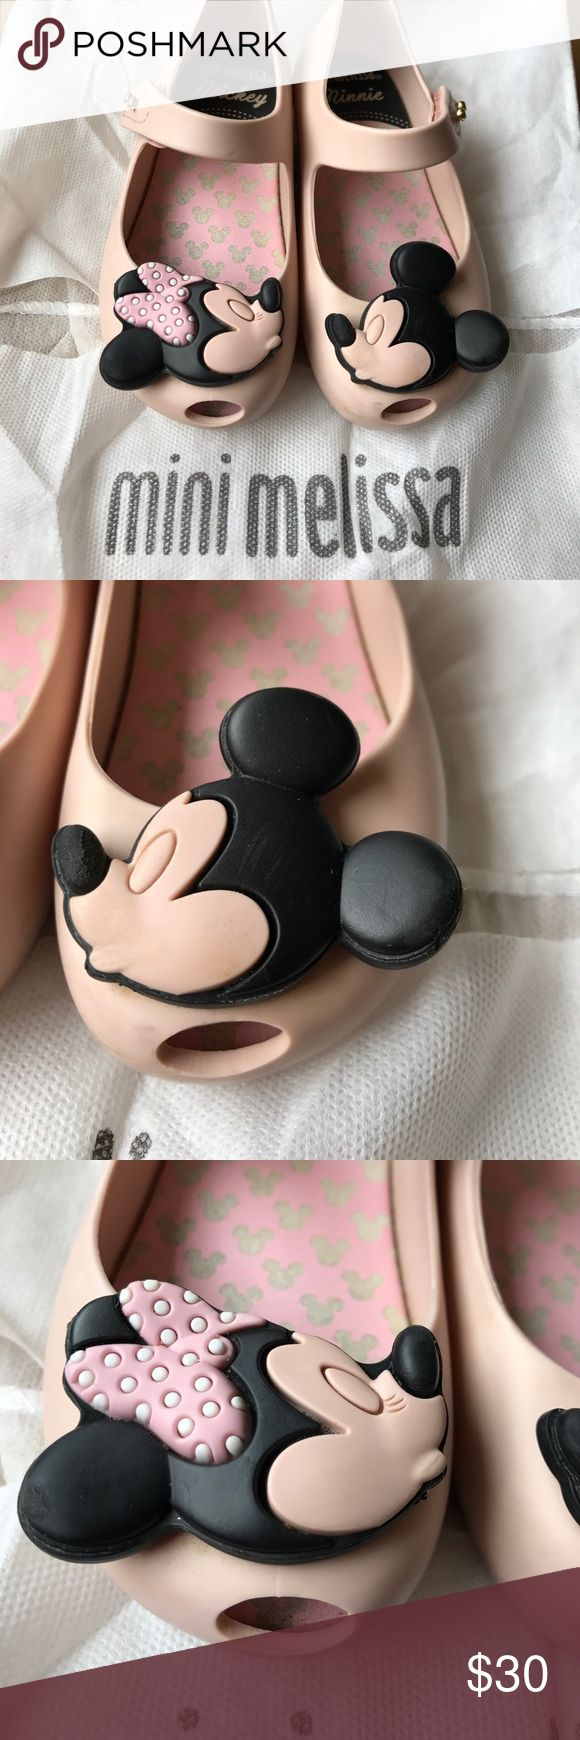 Mini Melissa Kissing Minnie & Mickey Toddler Shoes Very good used Mini Melissa shoes. Bought in late March but my daughters feet grew. Each shoe has some damage (see pictures - mickeys nose is textured, some scuffing) but still in overall great shape. Comes with dust bag and box - box was taped shut when I received it, so it's not in the best condition (last picture) Mini Melissa Shoes Dress Shoes